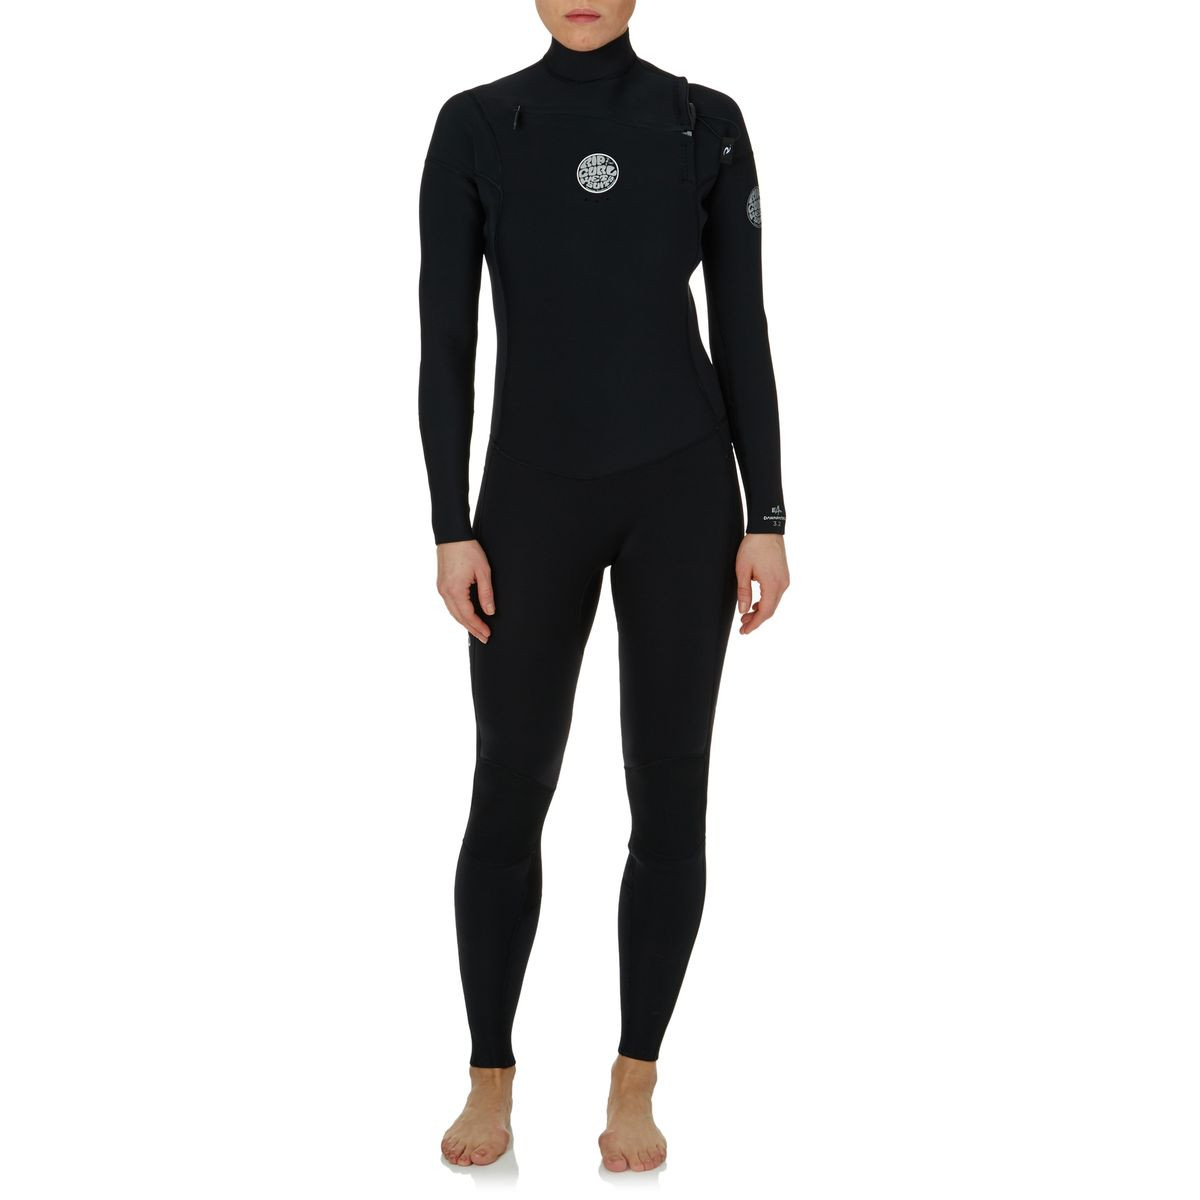 Rip Curl Womens Dawn Patrol 3/2mm 2017 Chest Zip Wetsuit - Black